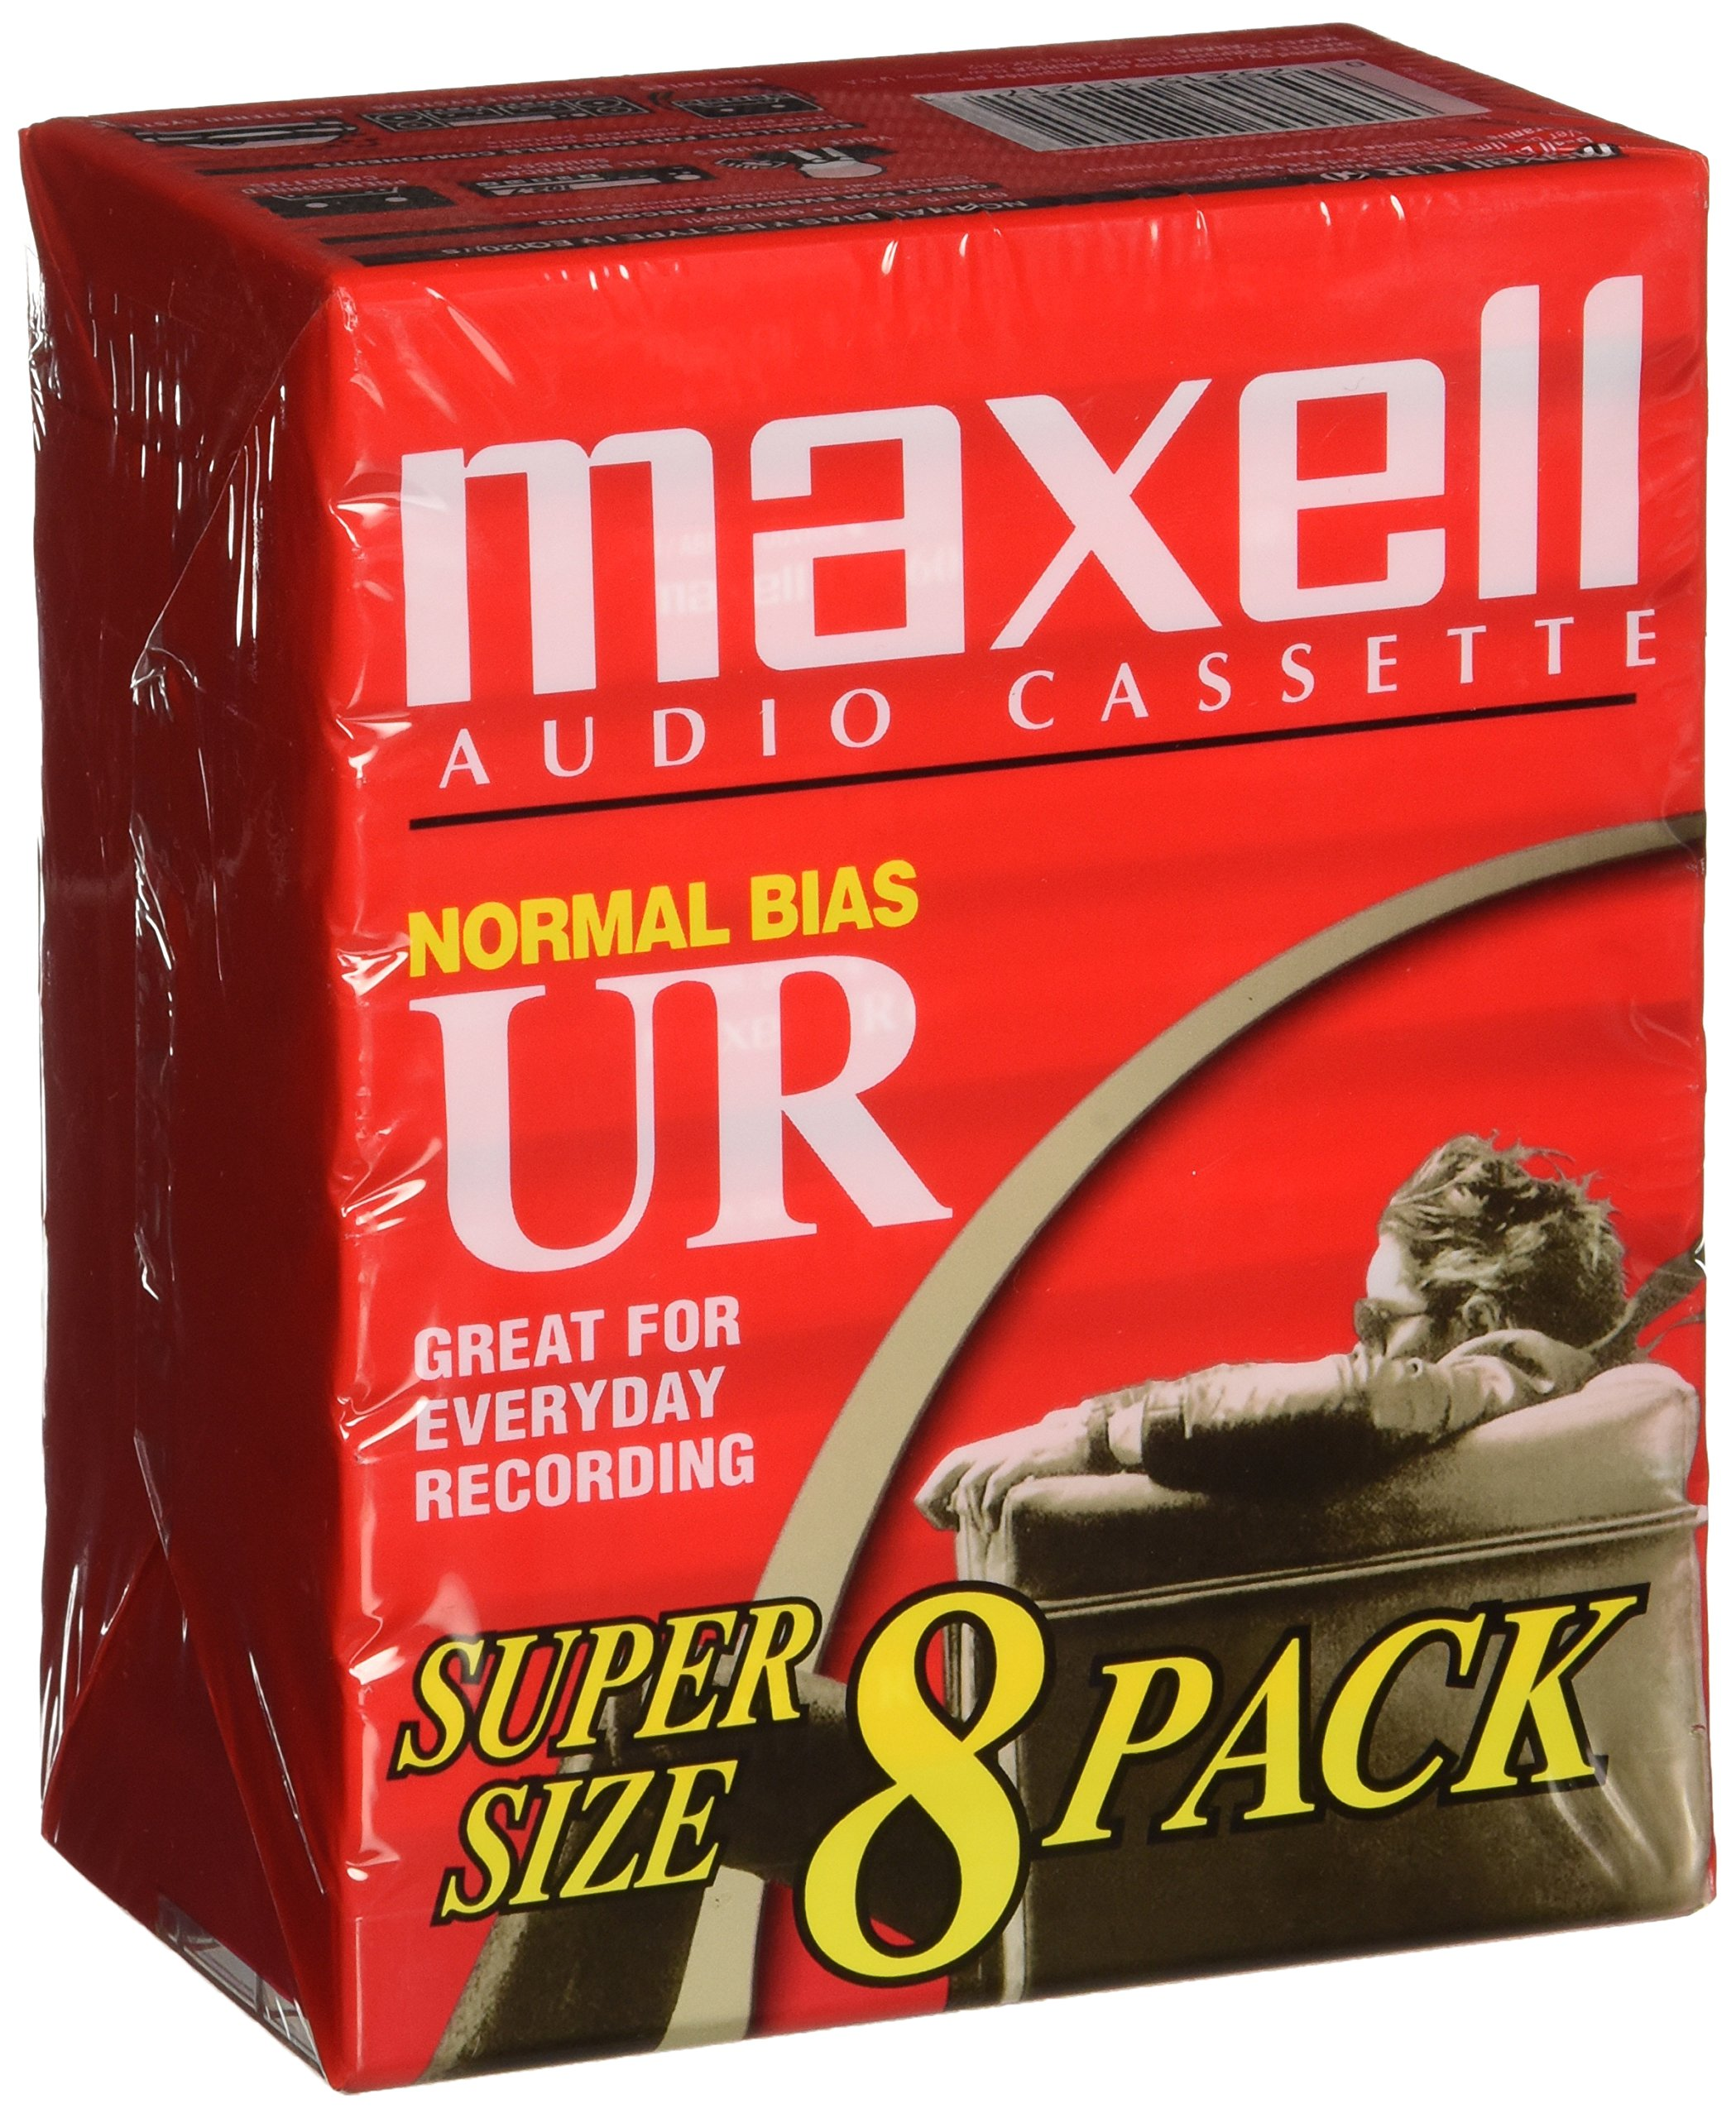 Maxell 109085 Brick Packs Optimally Designed for Voice Recording, Low Noise Surface with 60 Min Recording Time Per Tape